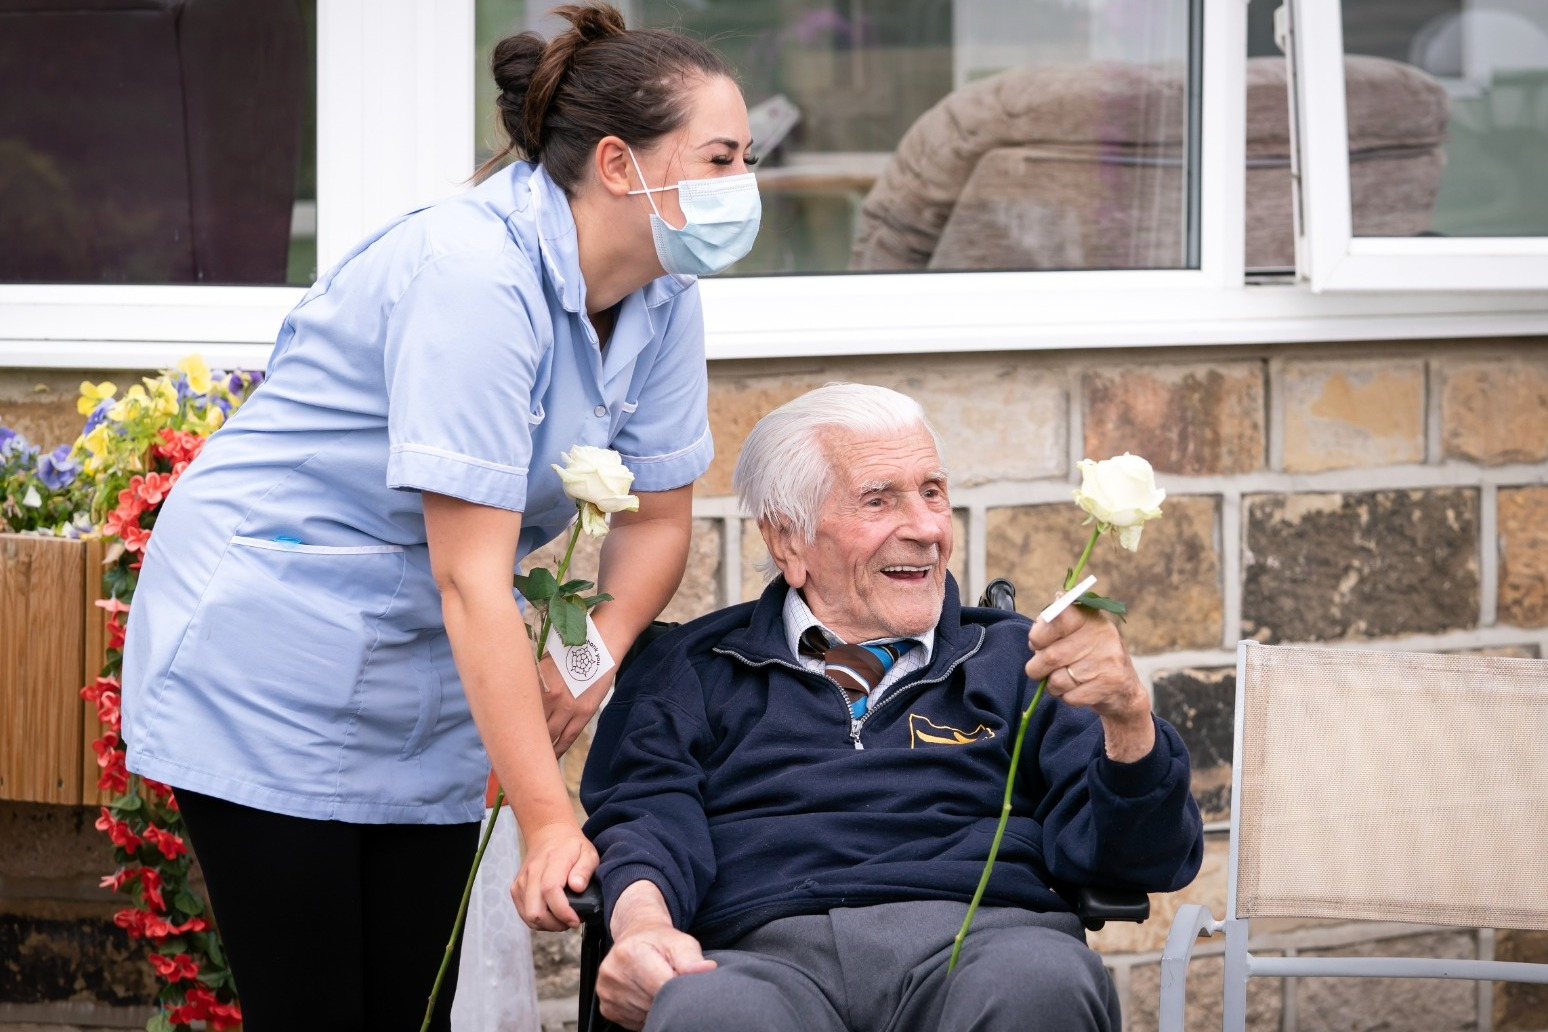 Weekly care home resident Covid deaths at lowest level since pandemic began